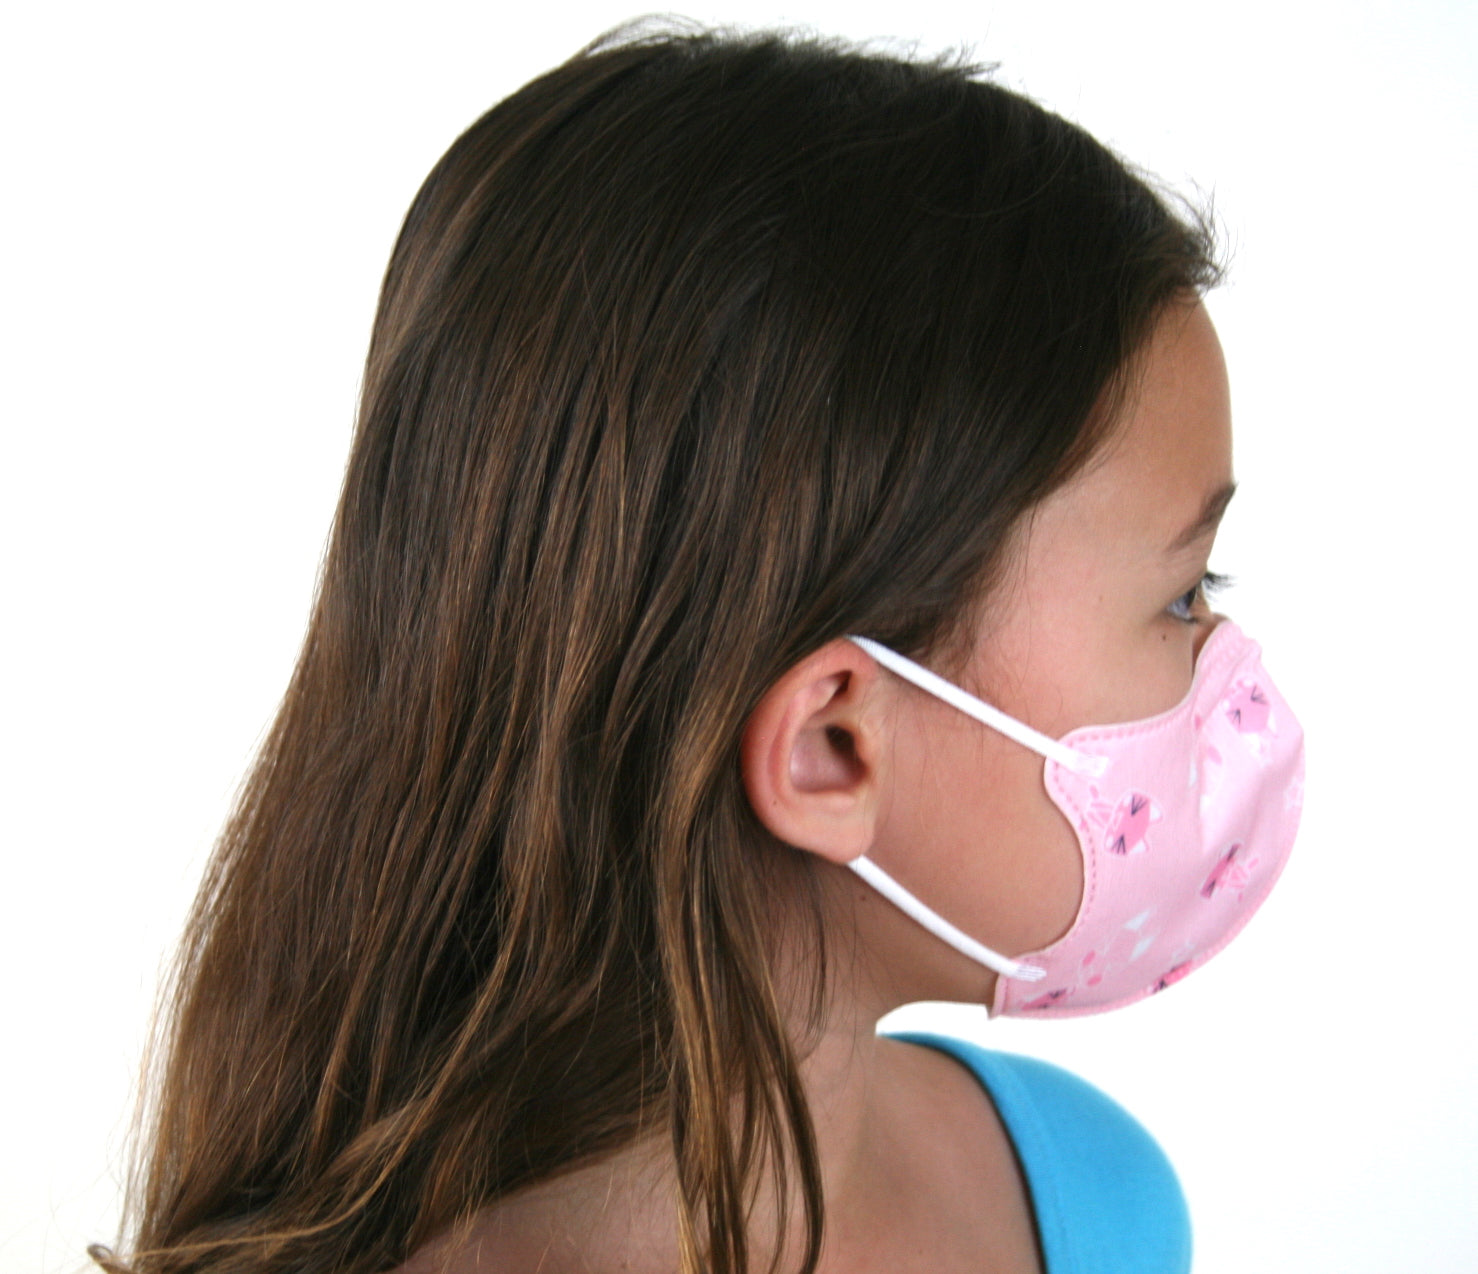 soft kids masks kids masks for sale best kids masks kids face mask with filter old navy kids masks pink kids masks cool kids face mask kids disposable face mask  ellie mei kids face mask with filter